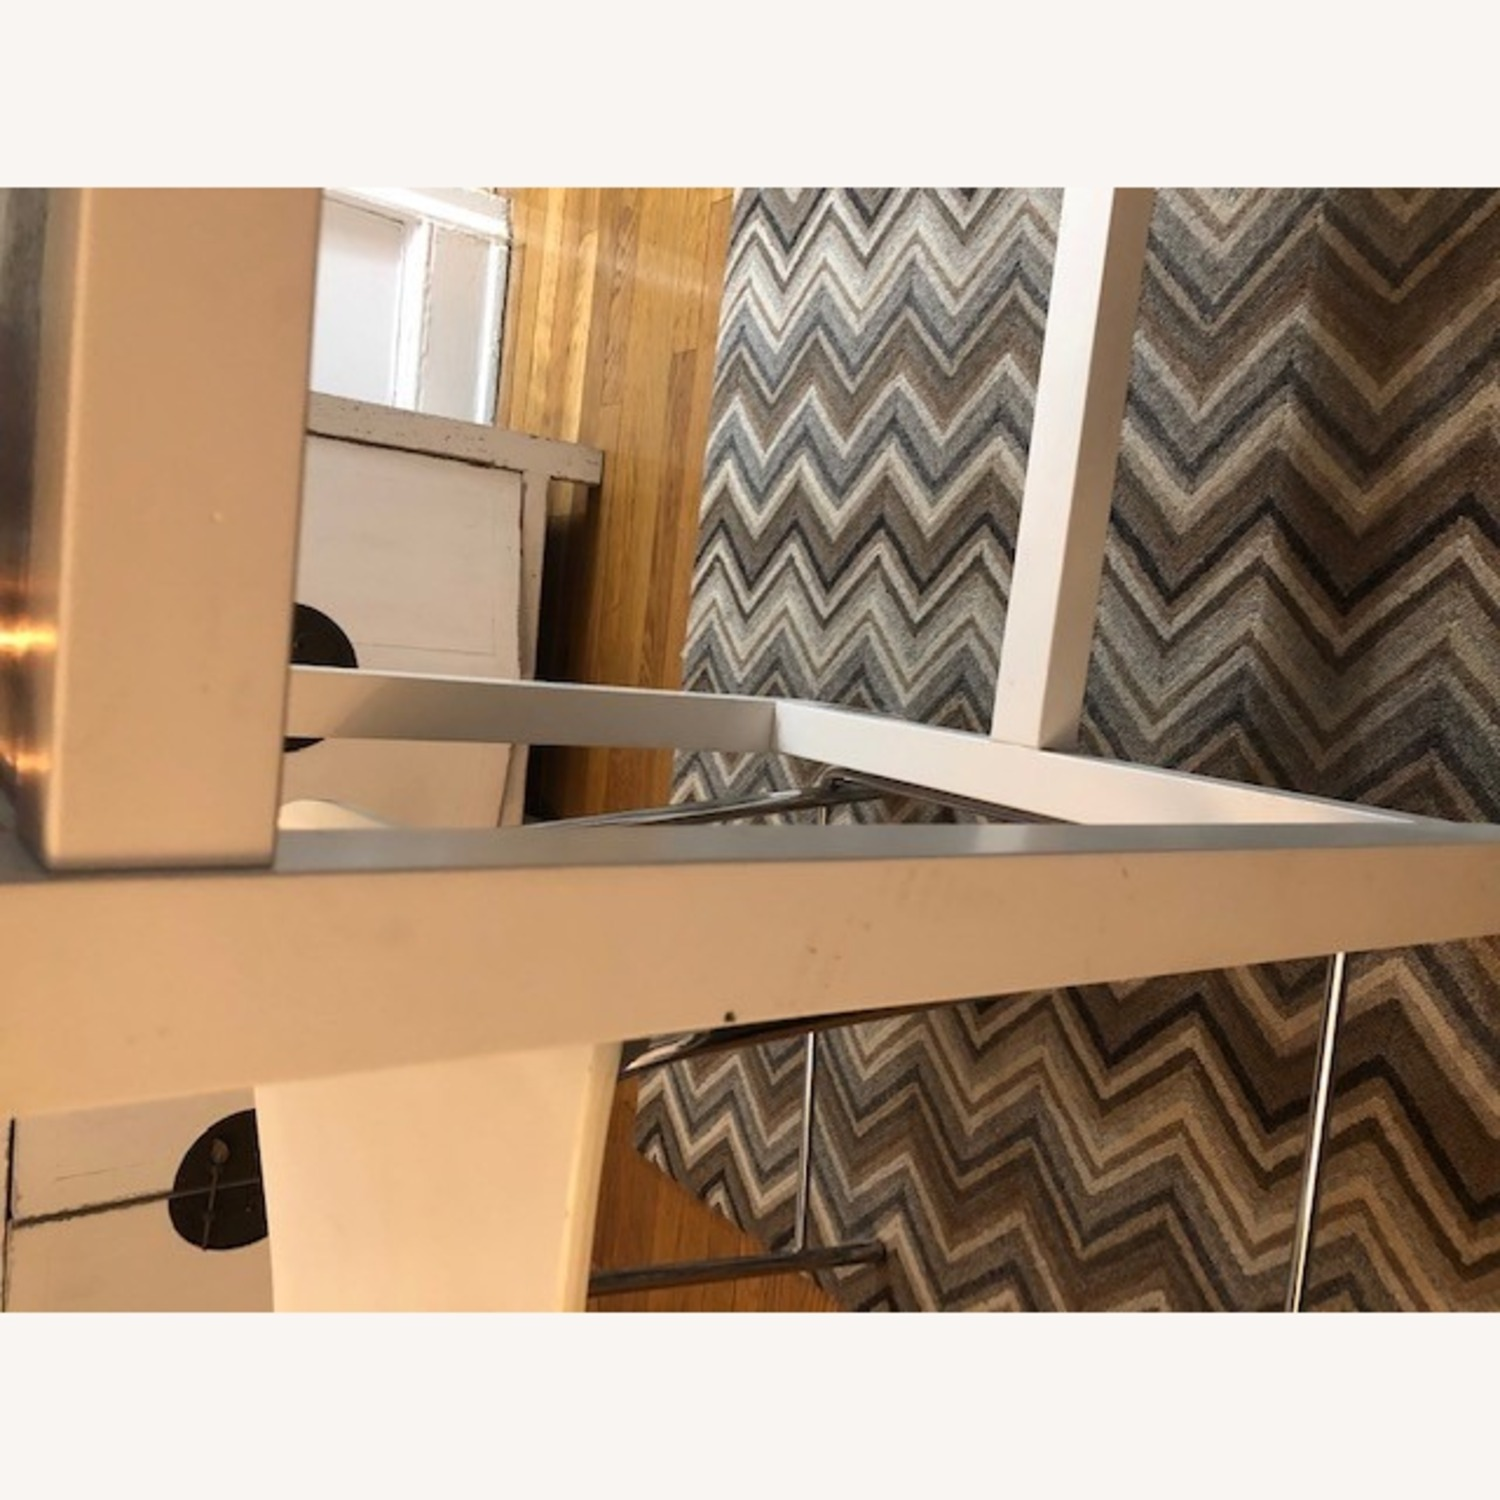 Crate & Barrel Stainless Steel High Top Table - image-5